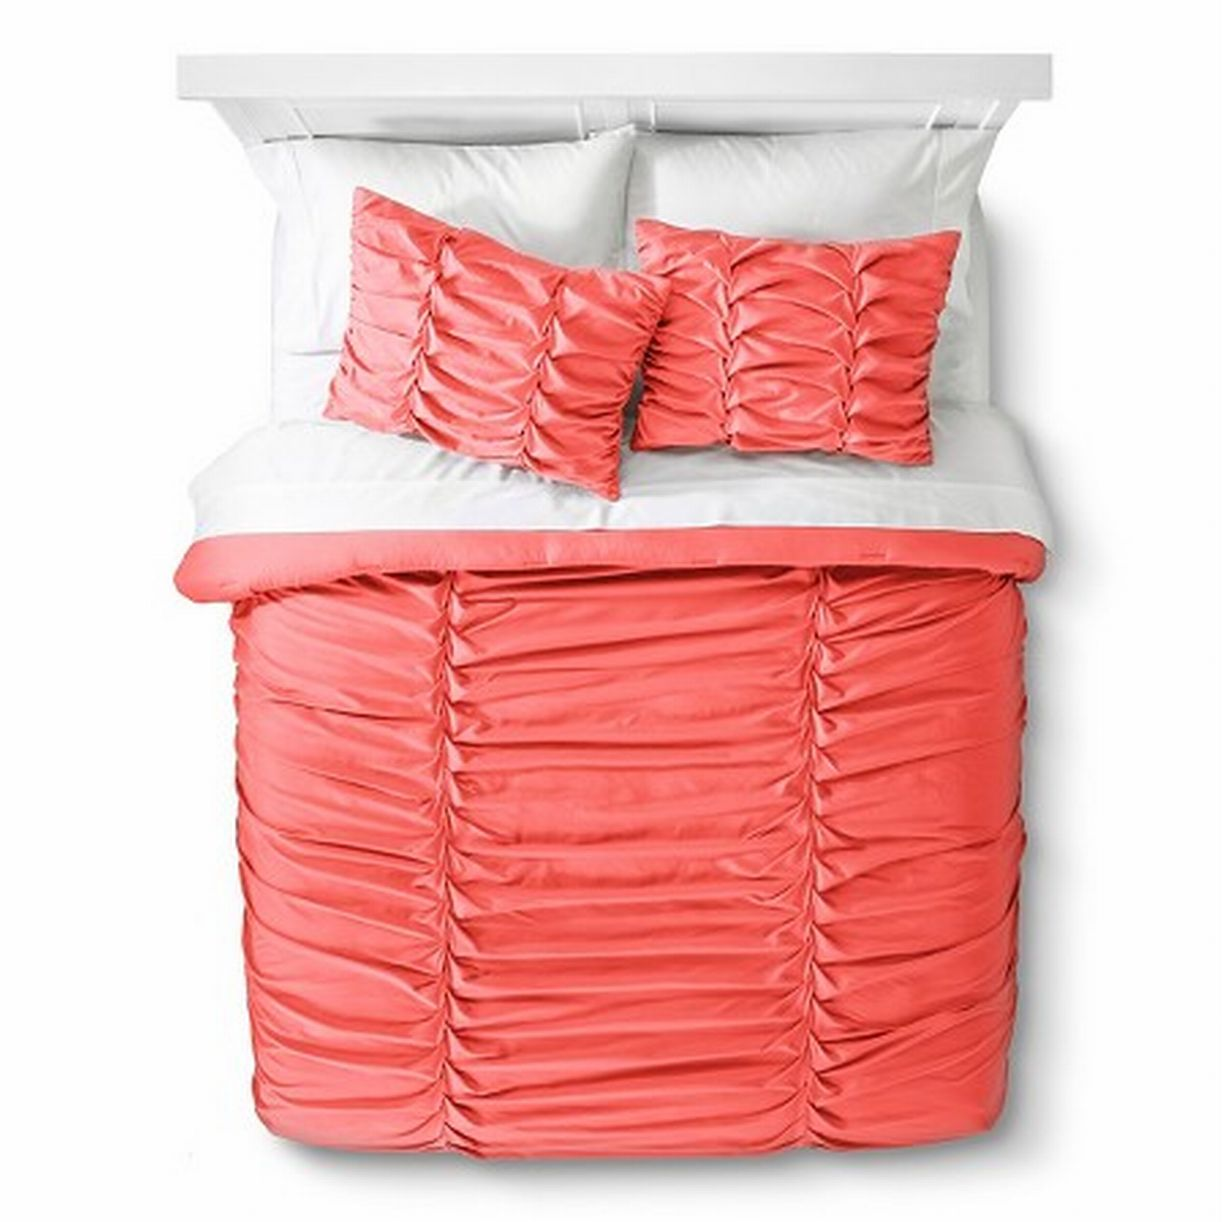 Xhilaration Full Queen Peach Ruched Comforter Set with Shams 3 Pc